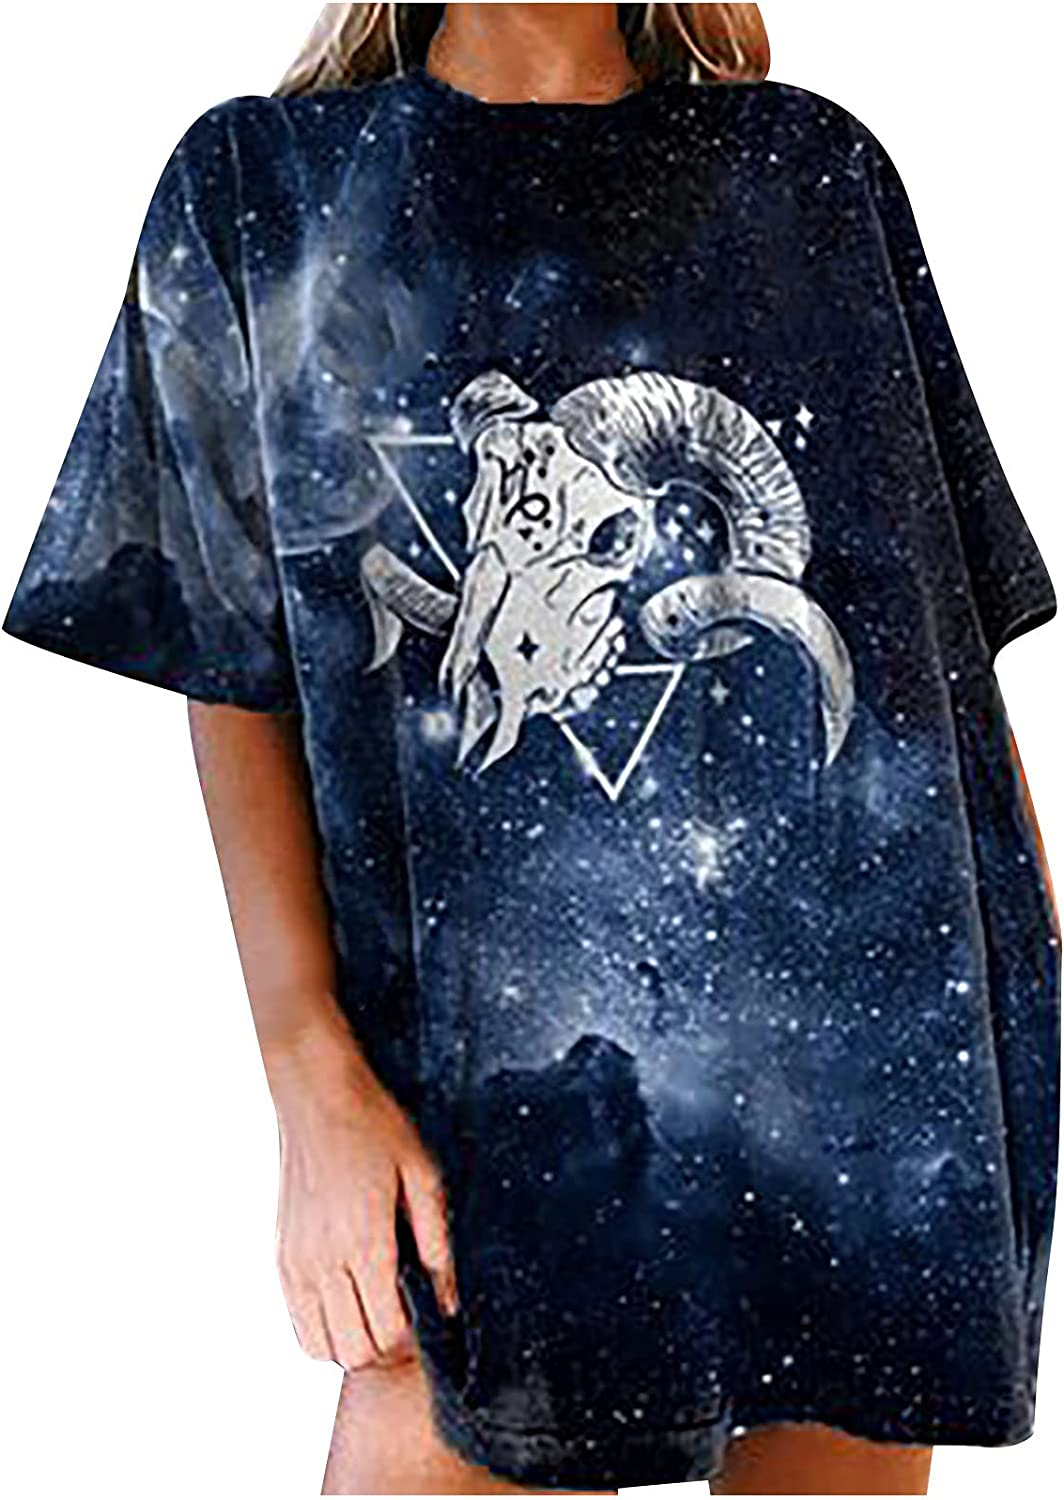 Women's Vintage T-Shirt Drop Sleeves Constellation Printed Graphics Tee Tops Casual Short Sleeve Tunic Tops